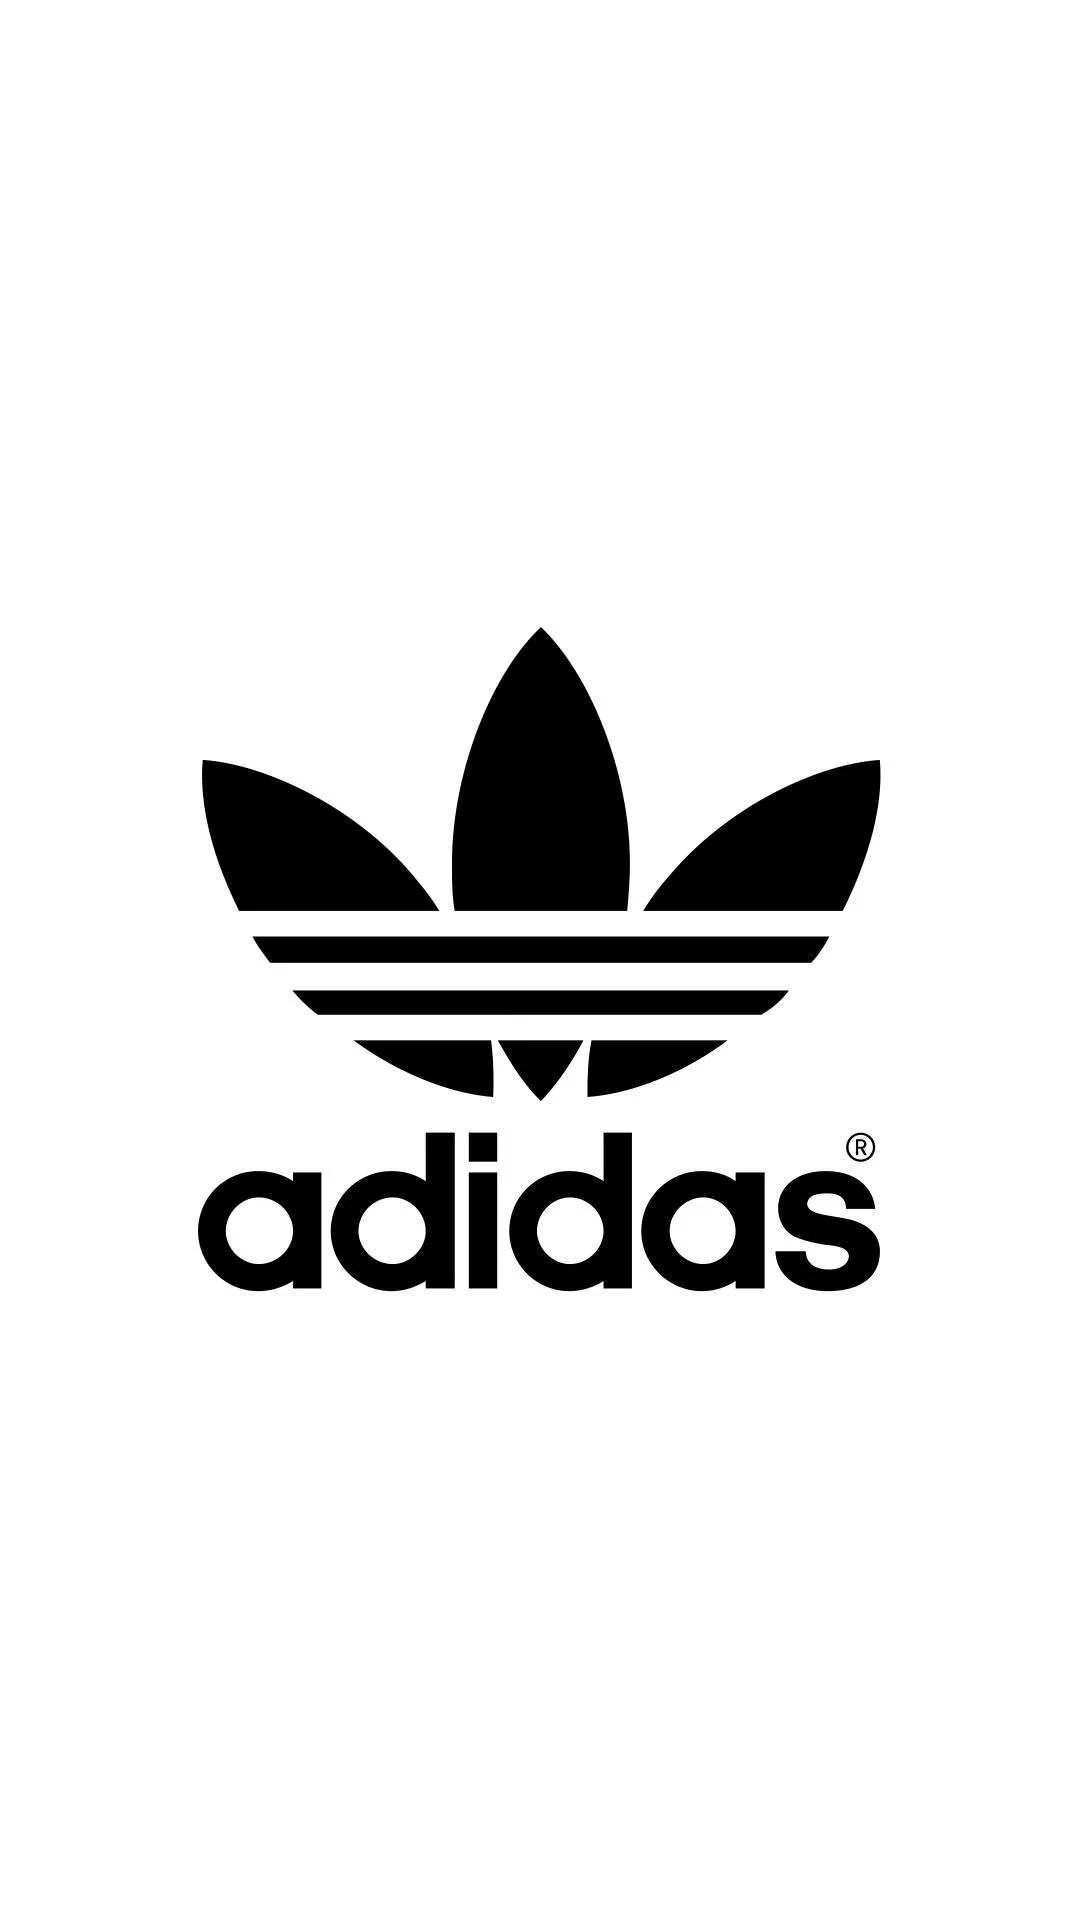 White Adidas Aesthetic Wallpapers